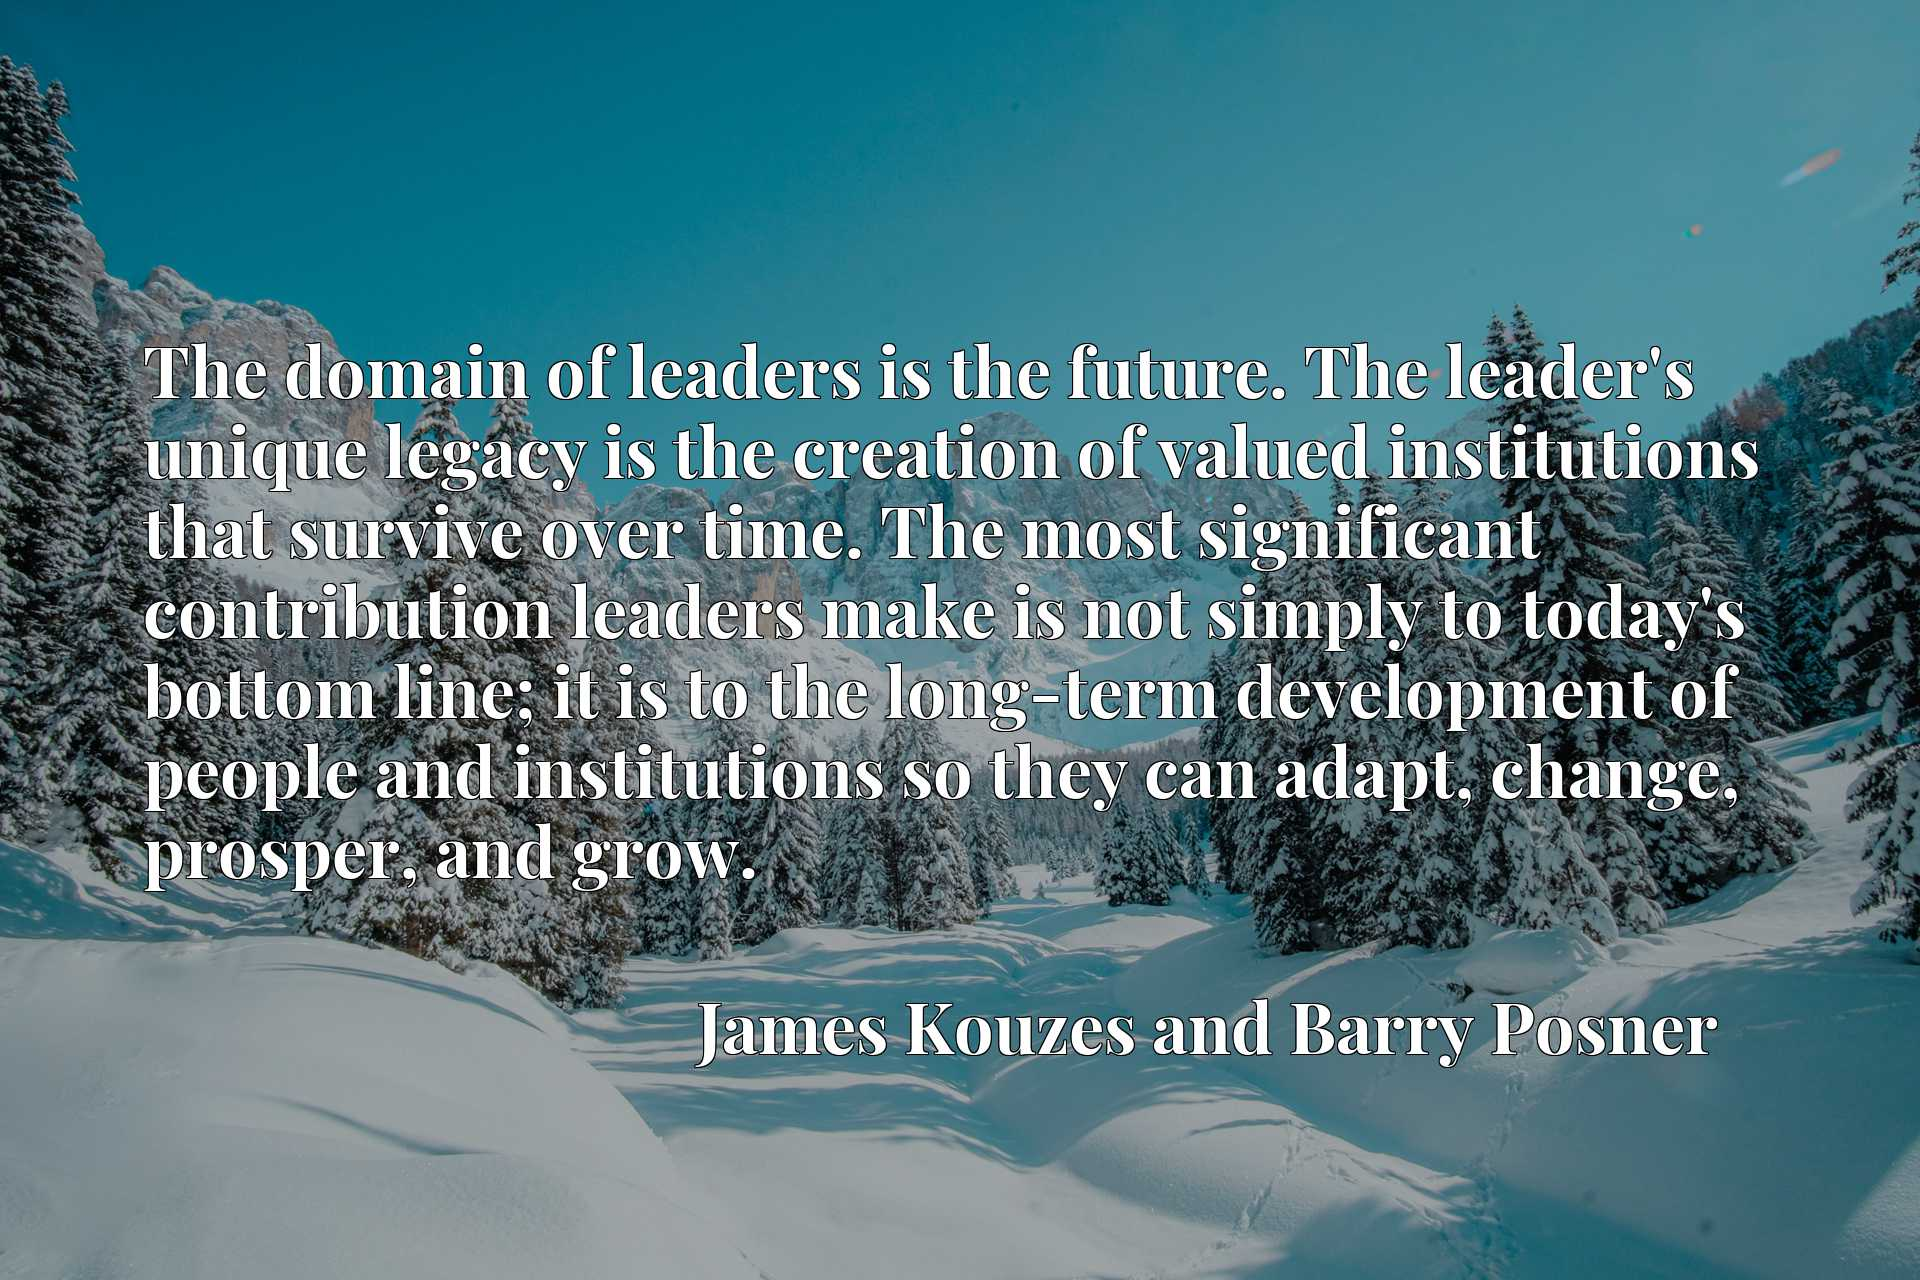 The domain of leaders is the future. The leader's unique legacy is the creation of valued institutions that survive over time. The most significant contribution leaders make is not simply to today's bottom line; it is to the long-term development of people and institutions so they can adapt, change, prosper, and grow.